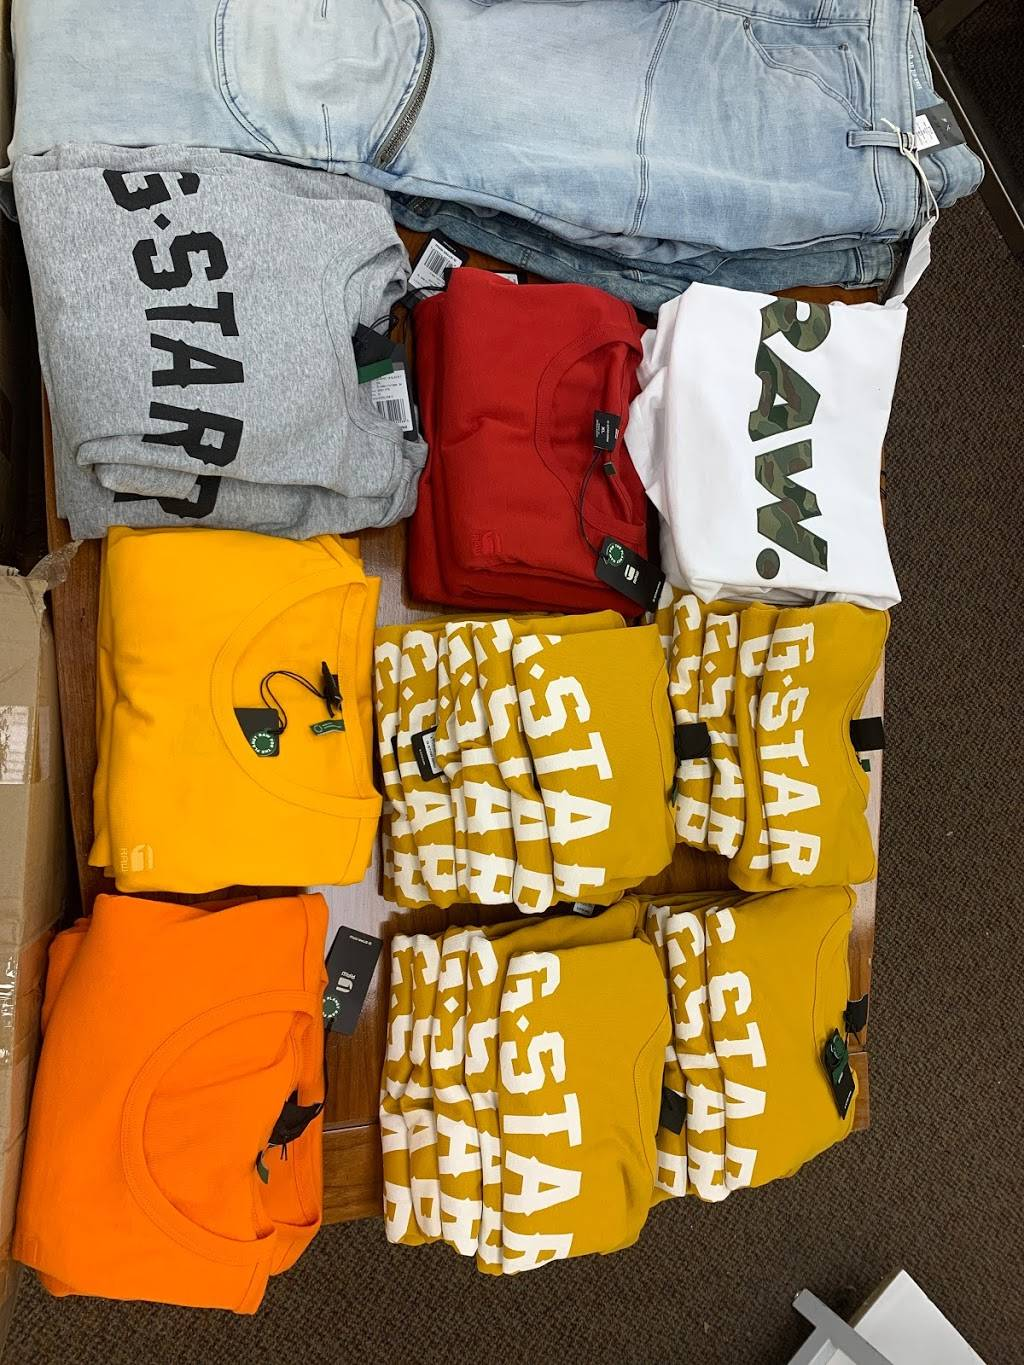 Hush - clothing store  | Photo 4 of 7 | Address: 3791 Branch Ave, Hillcrest Heights, MD 20748, USA | Phone: (301) 899-8355